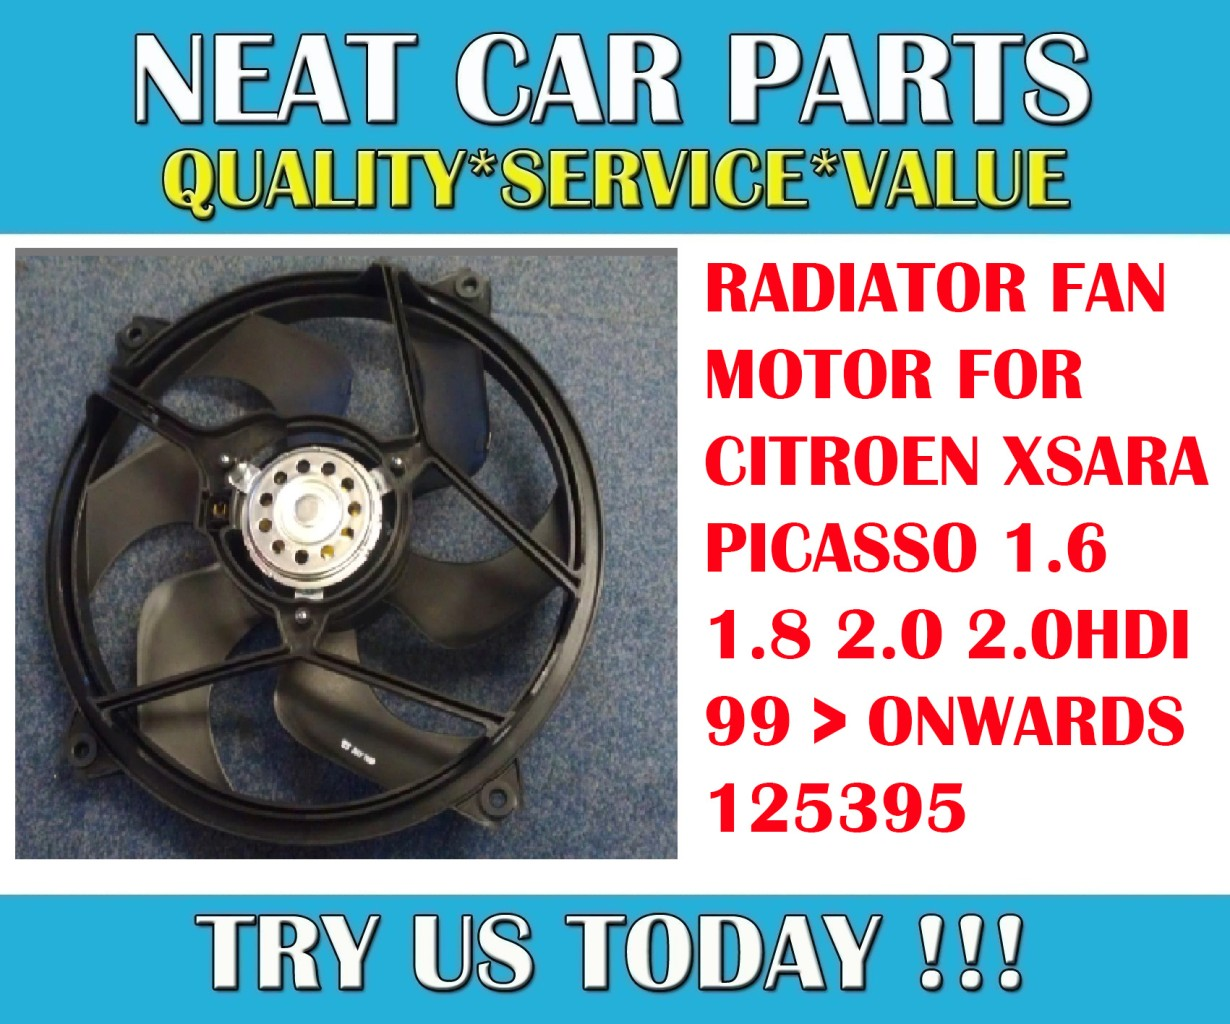 radiator cooling fan motor for citroen xsara picasso 1 6 1 8 2 0 2 0hdi 125395 ebay. Black Bedroom Furniture Sets. Home Design Ideas